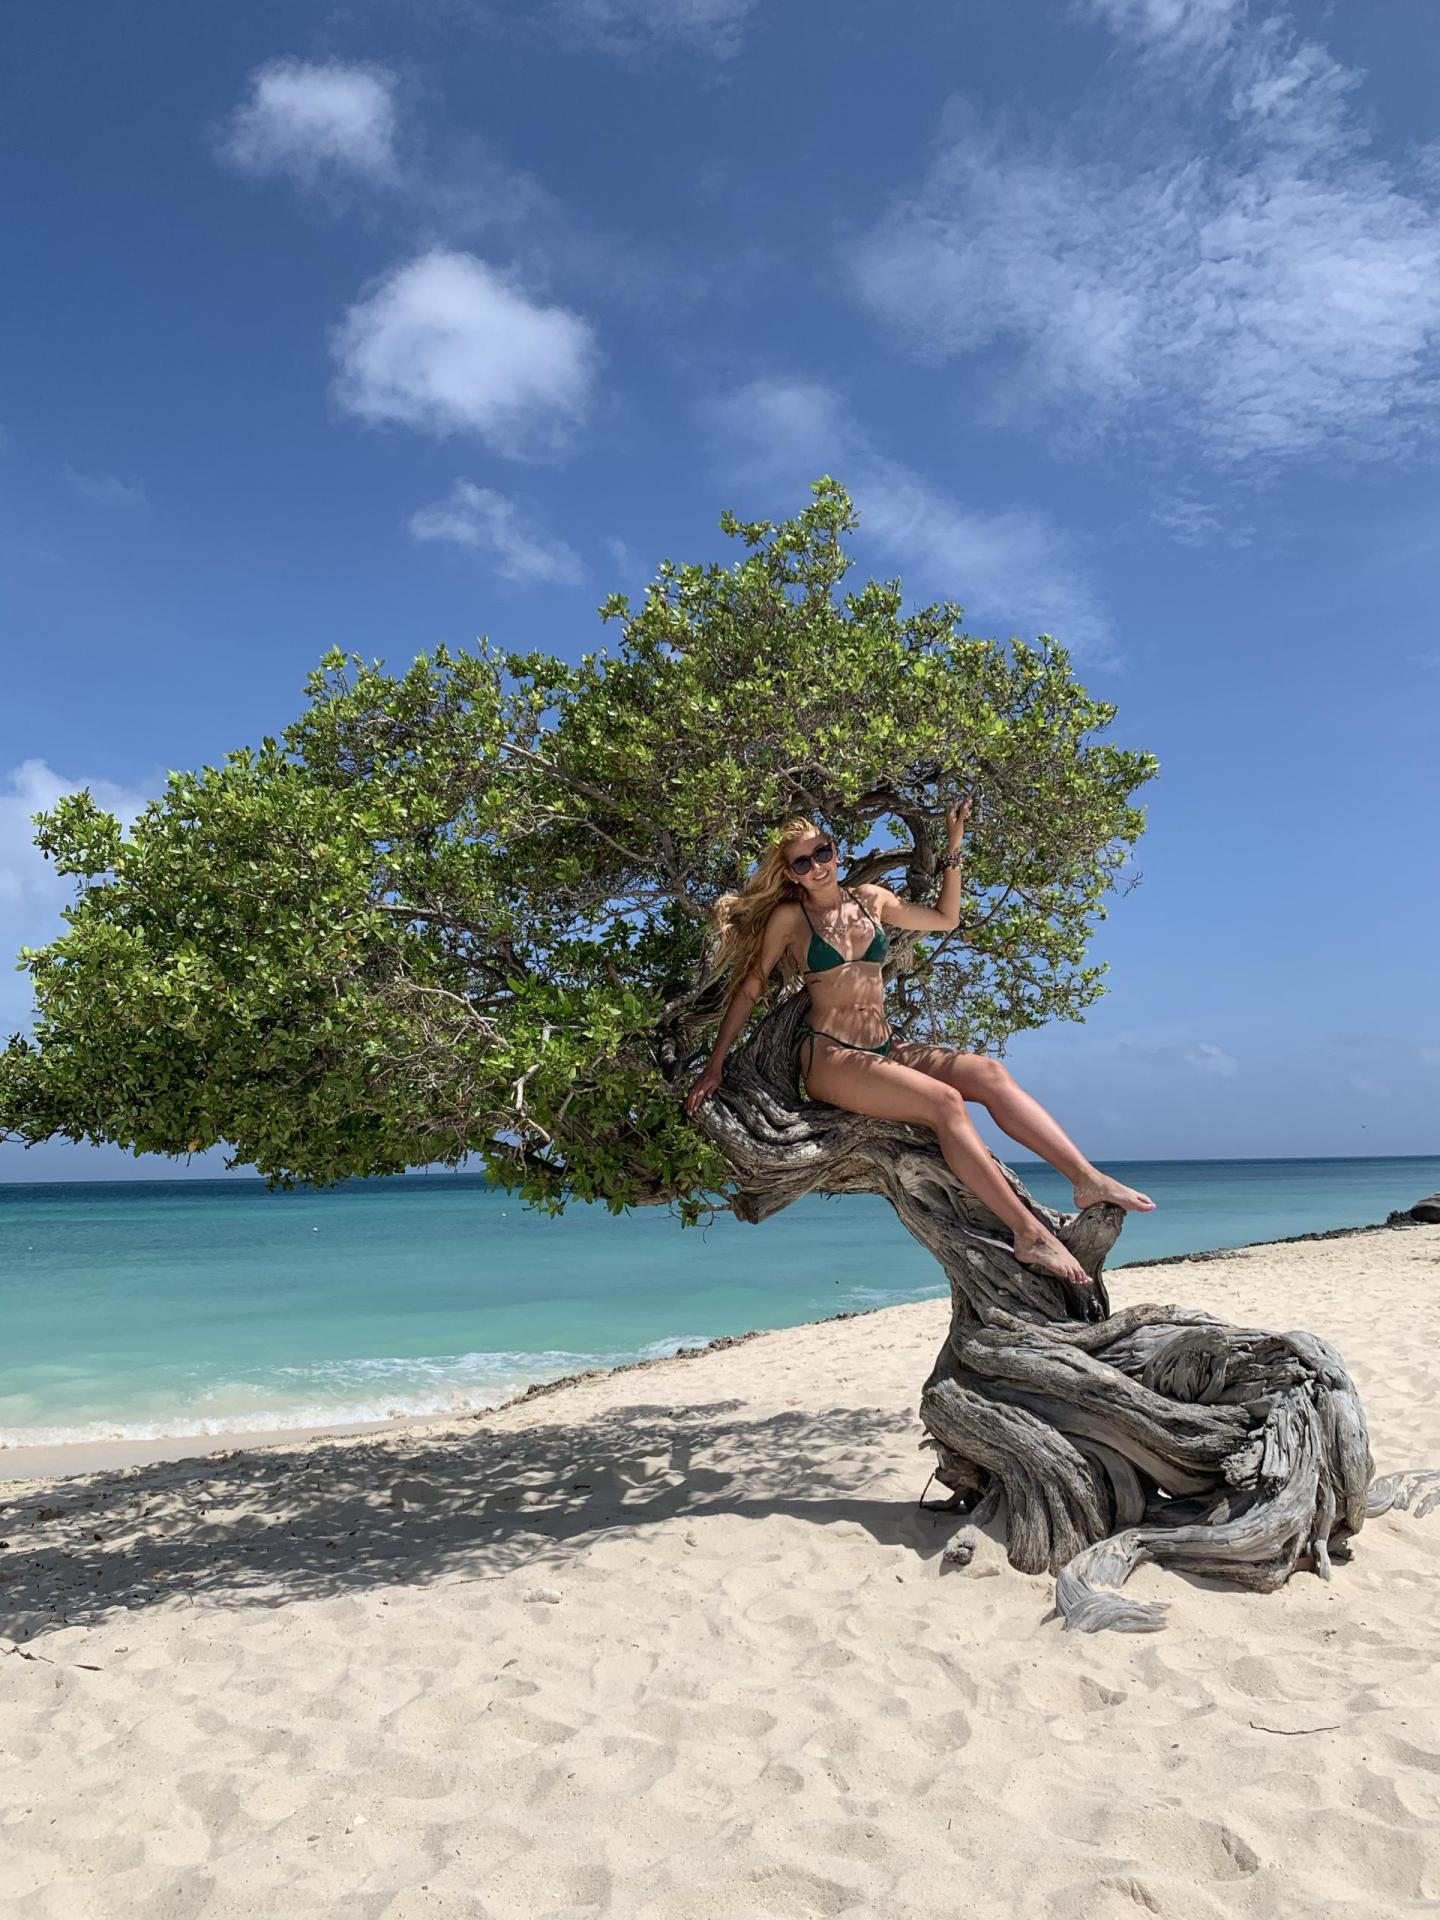 Woman in green bikini on top of a tree at the edge of the beach.